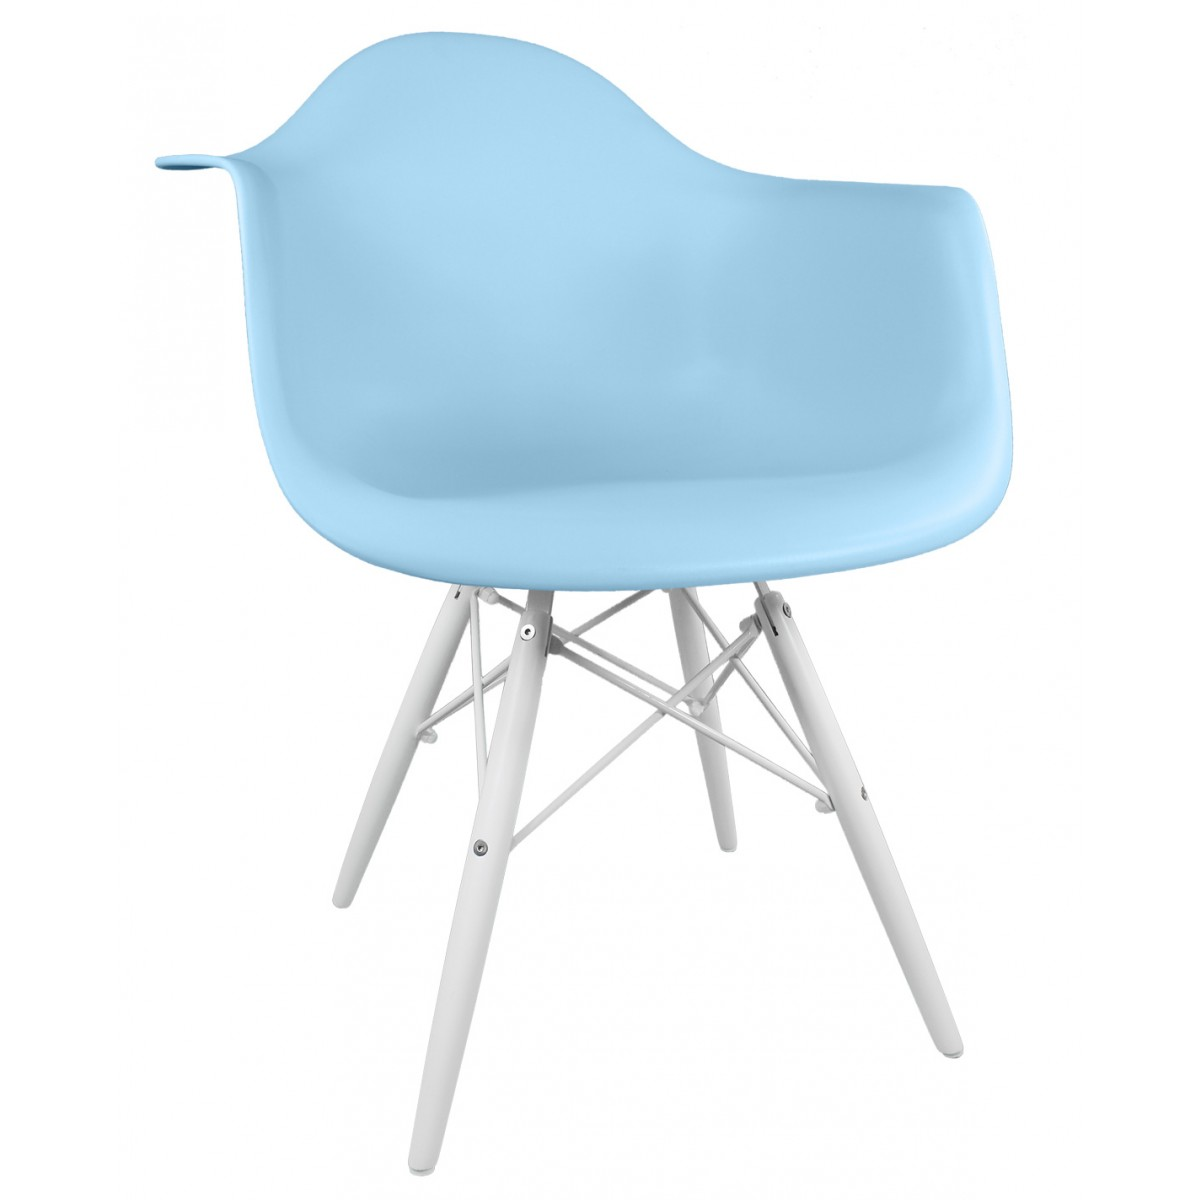 Superb img of  Molded Light Blue Plastic Accent Arm Chair with White Wood Eiffel Legs with #2C759F color and 1200x1200 pixels